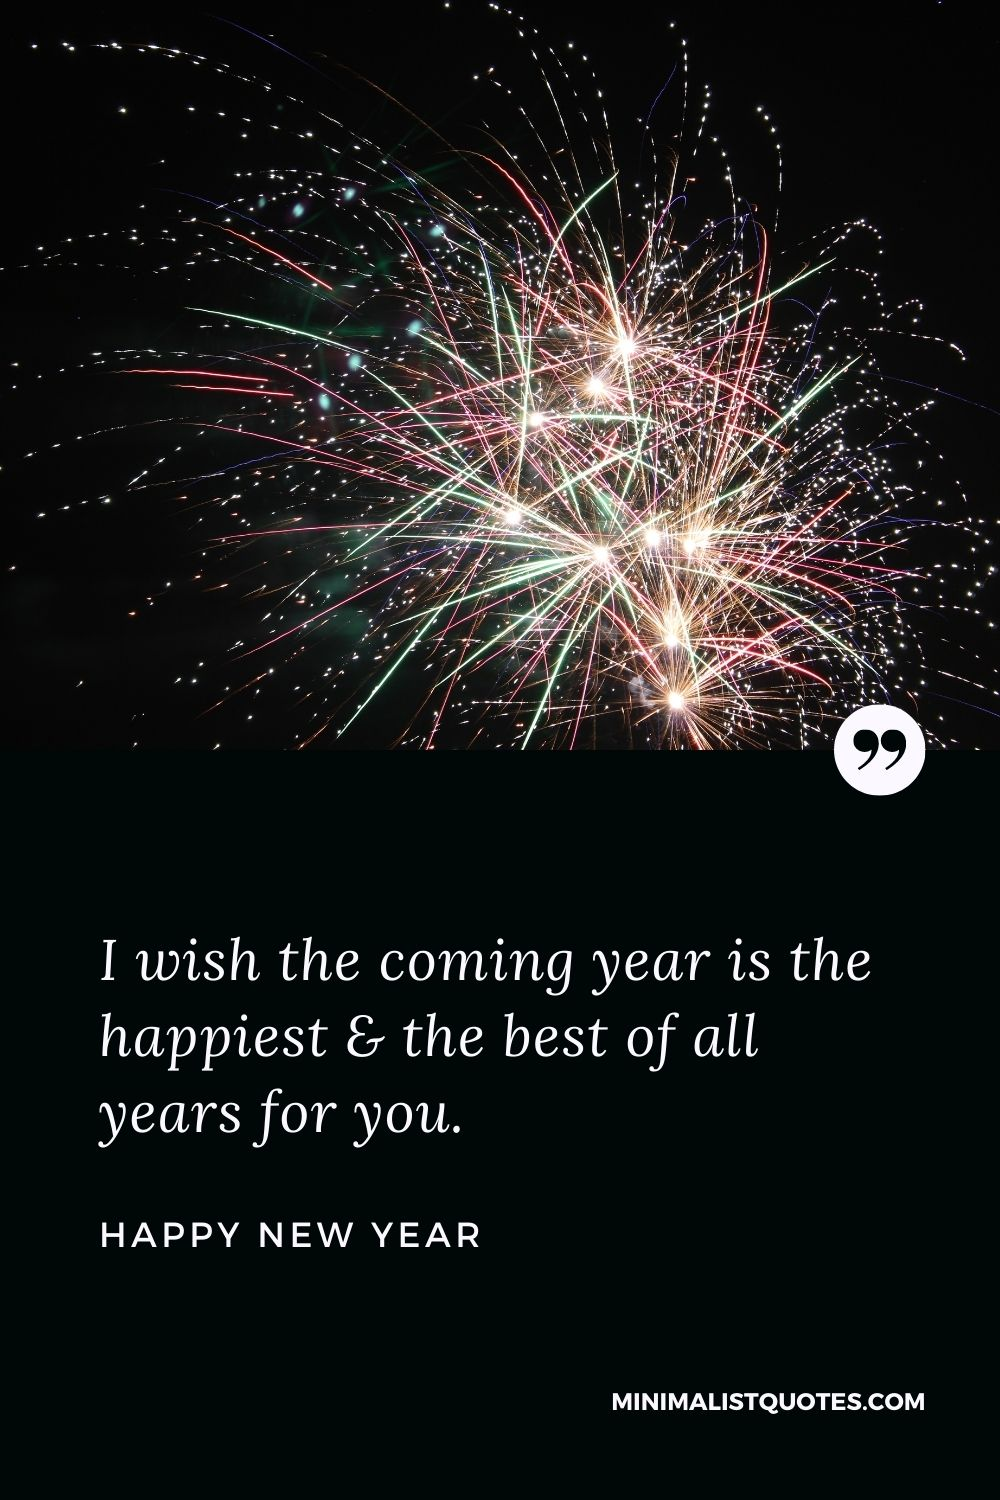 New Year Wish - I wish the coming year is the happiest & the best of all years for you.